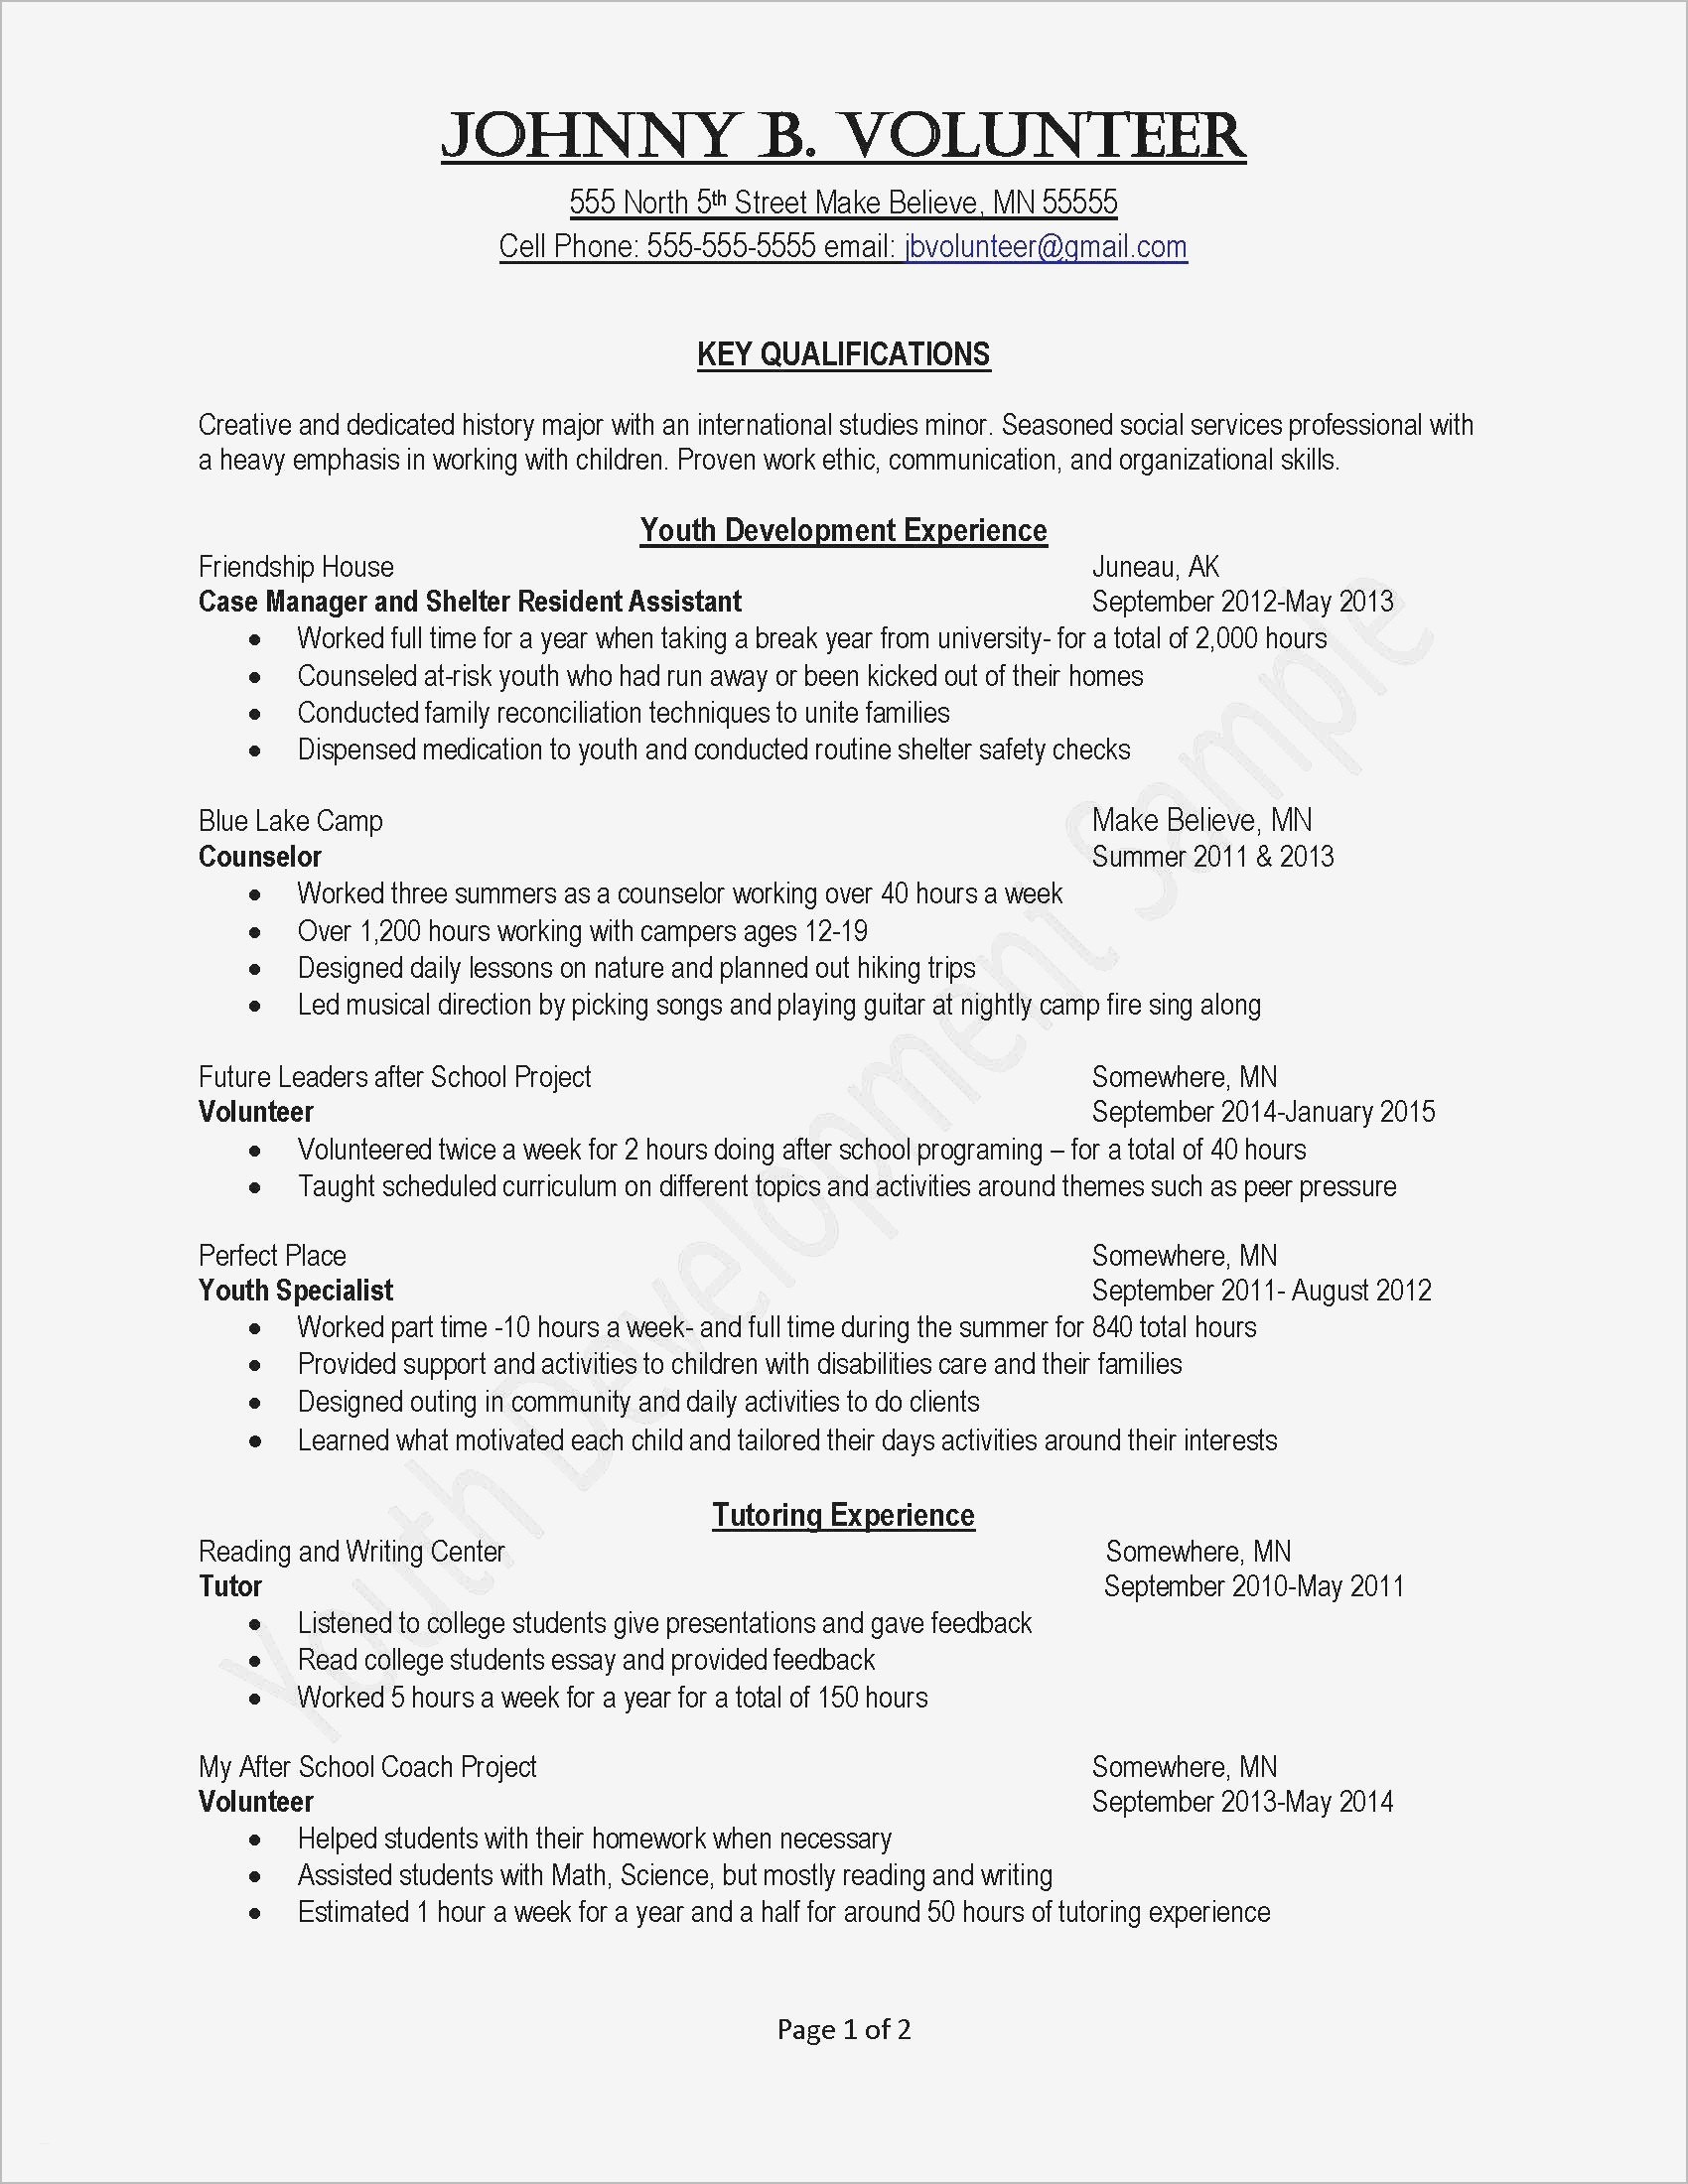 personal cover letter template example-Personal Resume Template Free Awesome Job Fer Letter Template Us Copy Od Consultant Cover Letter Fungram 8-c